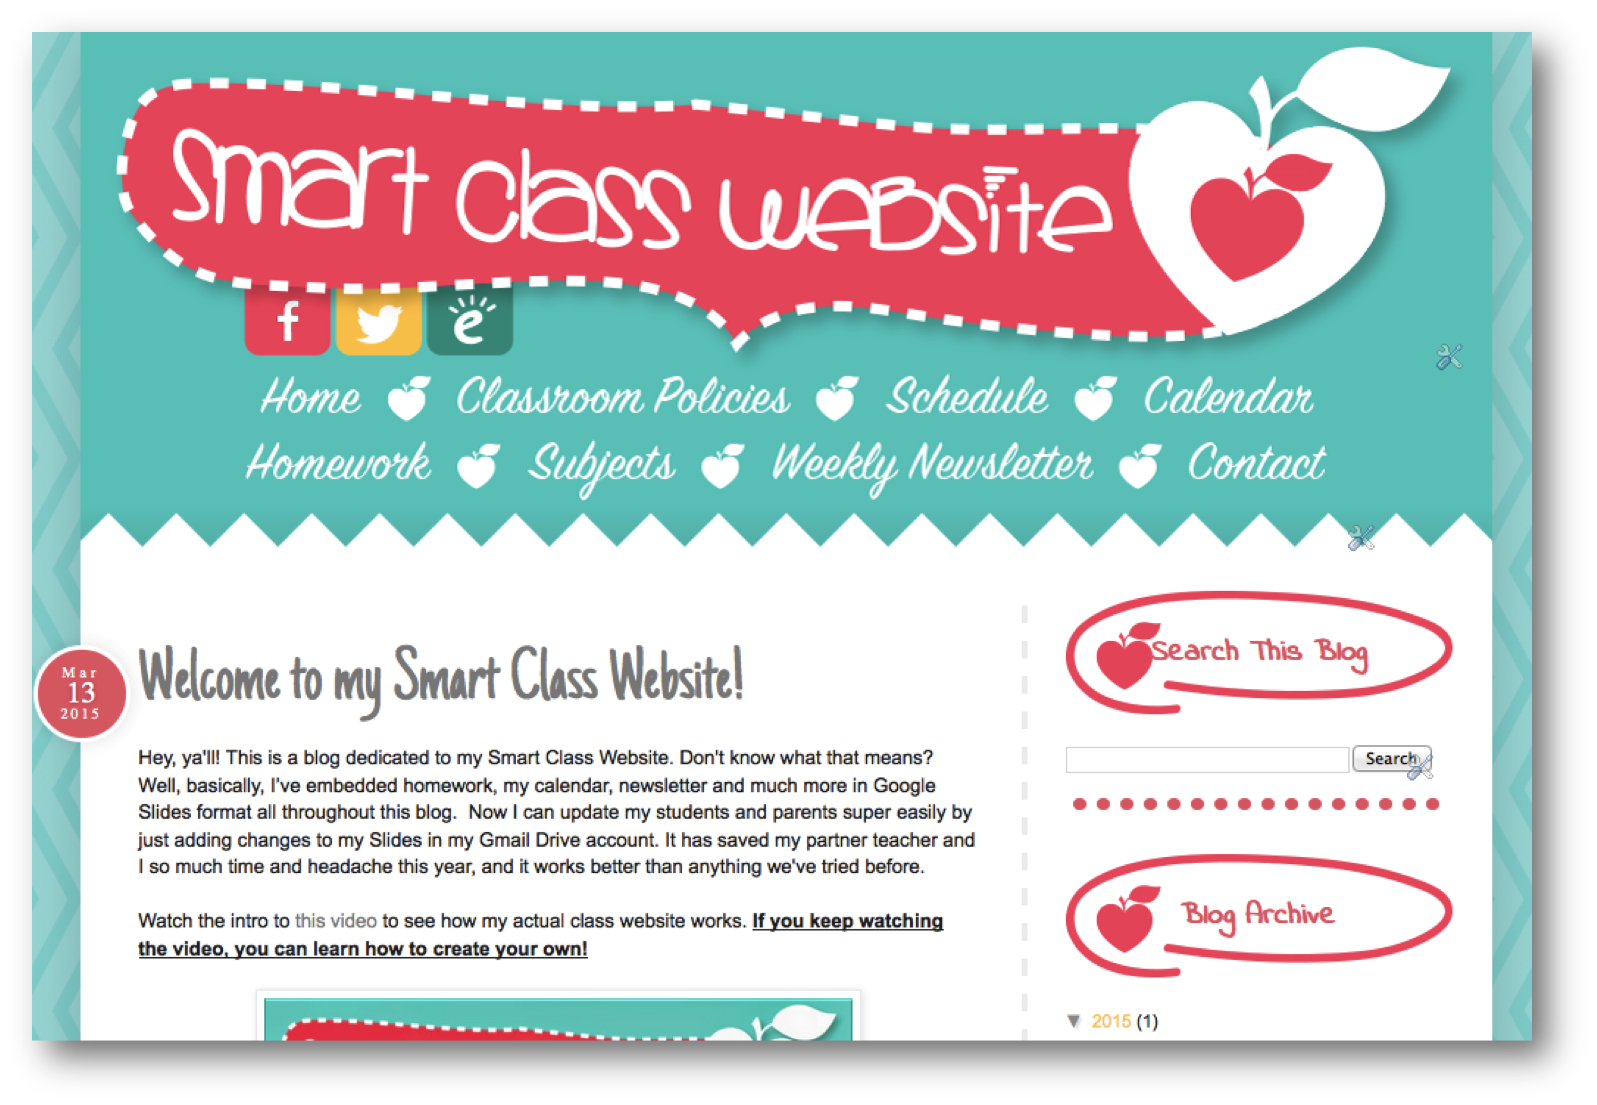 My Smart Class Website